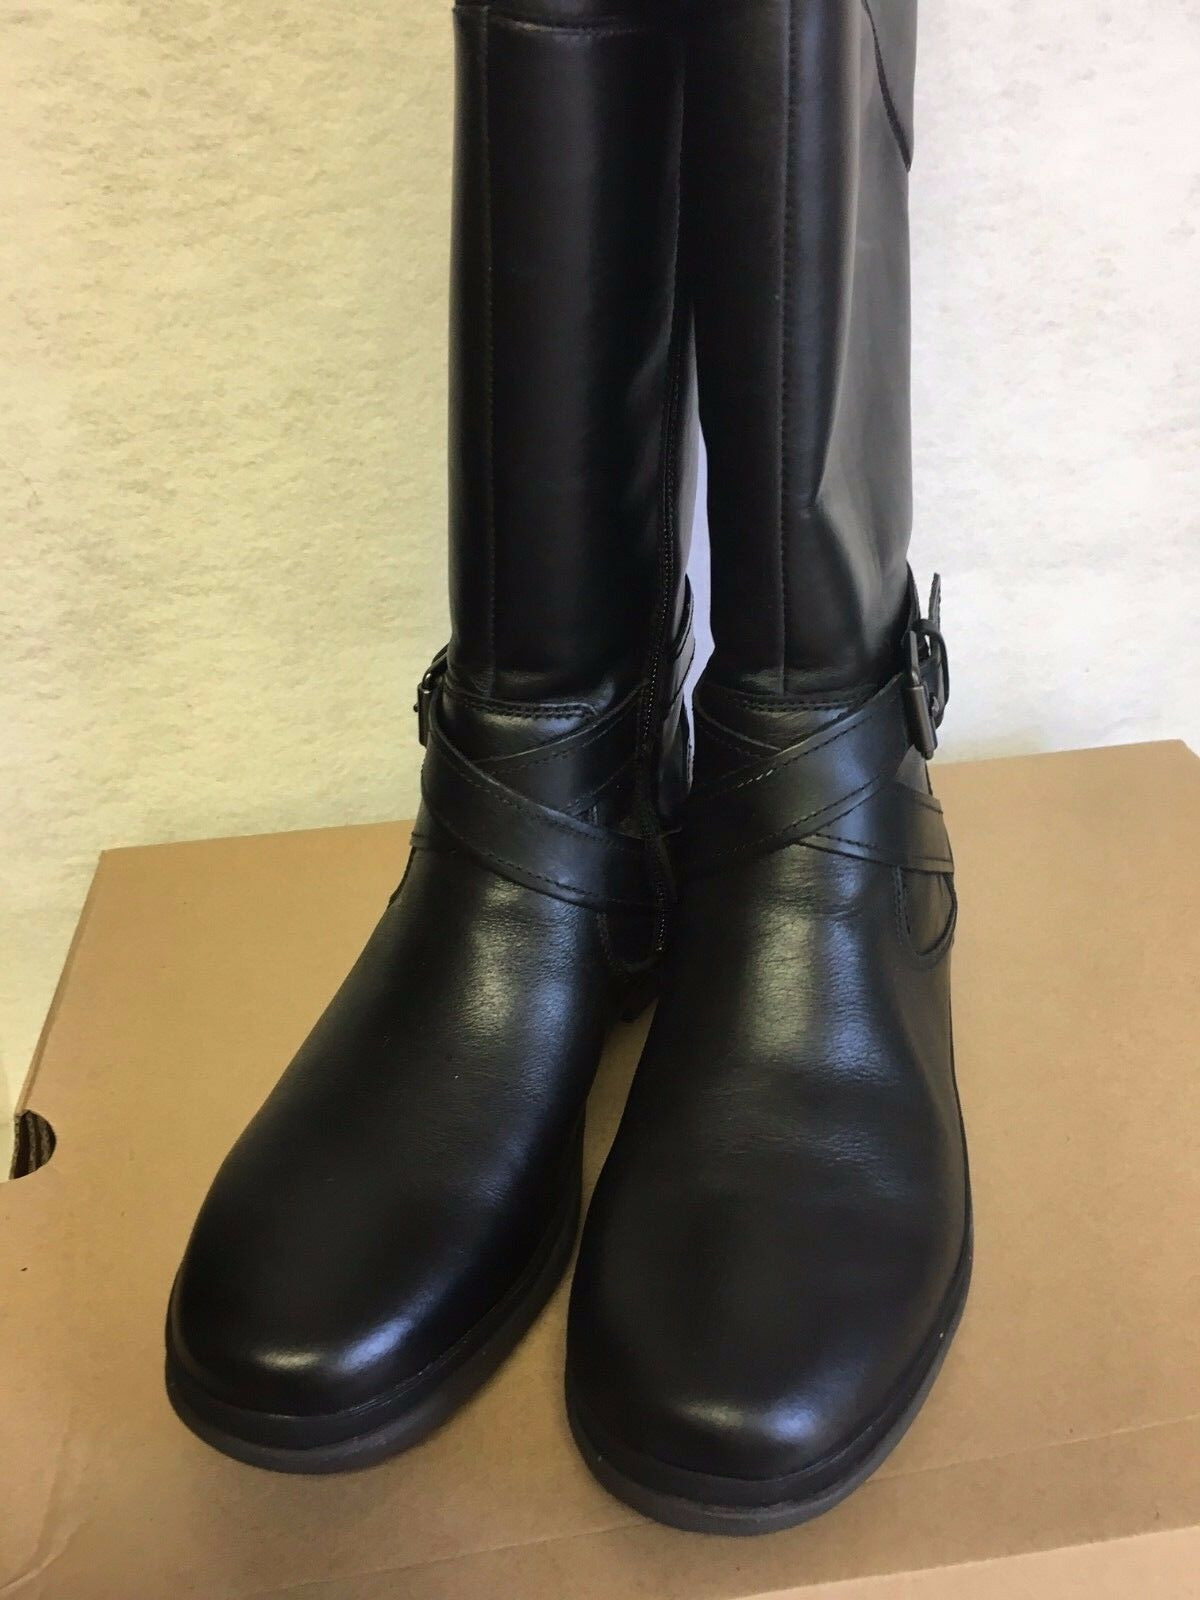 e07387c3902 Ugg Evanna Stout Tall Waterproof Leather and similar items